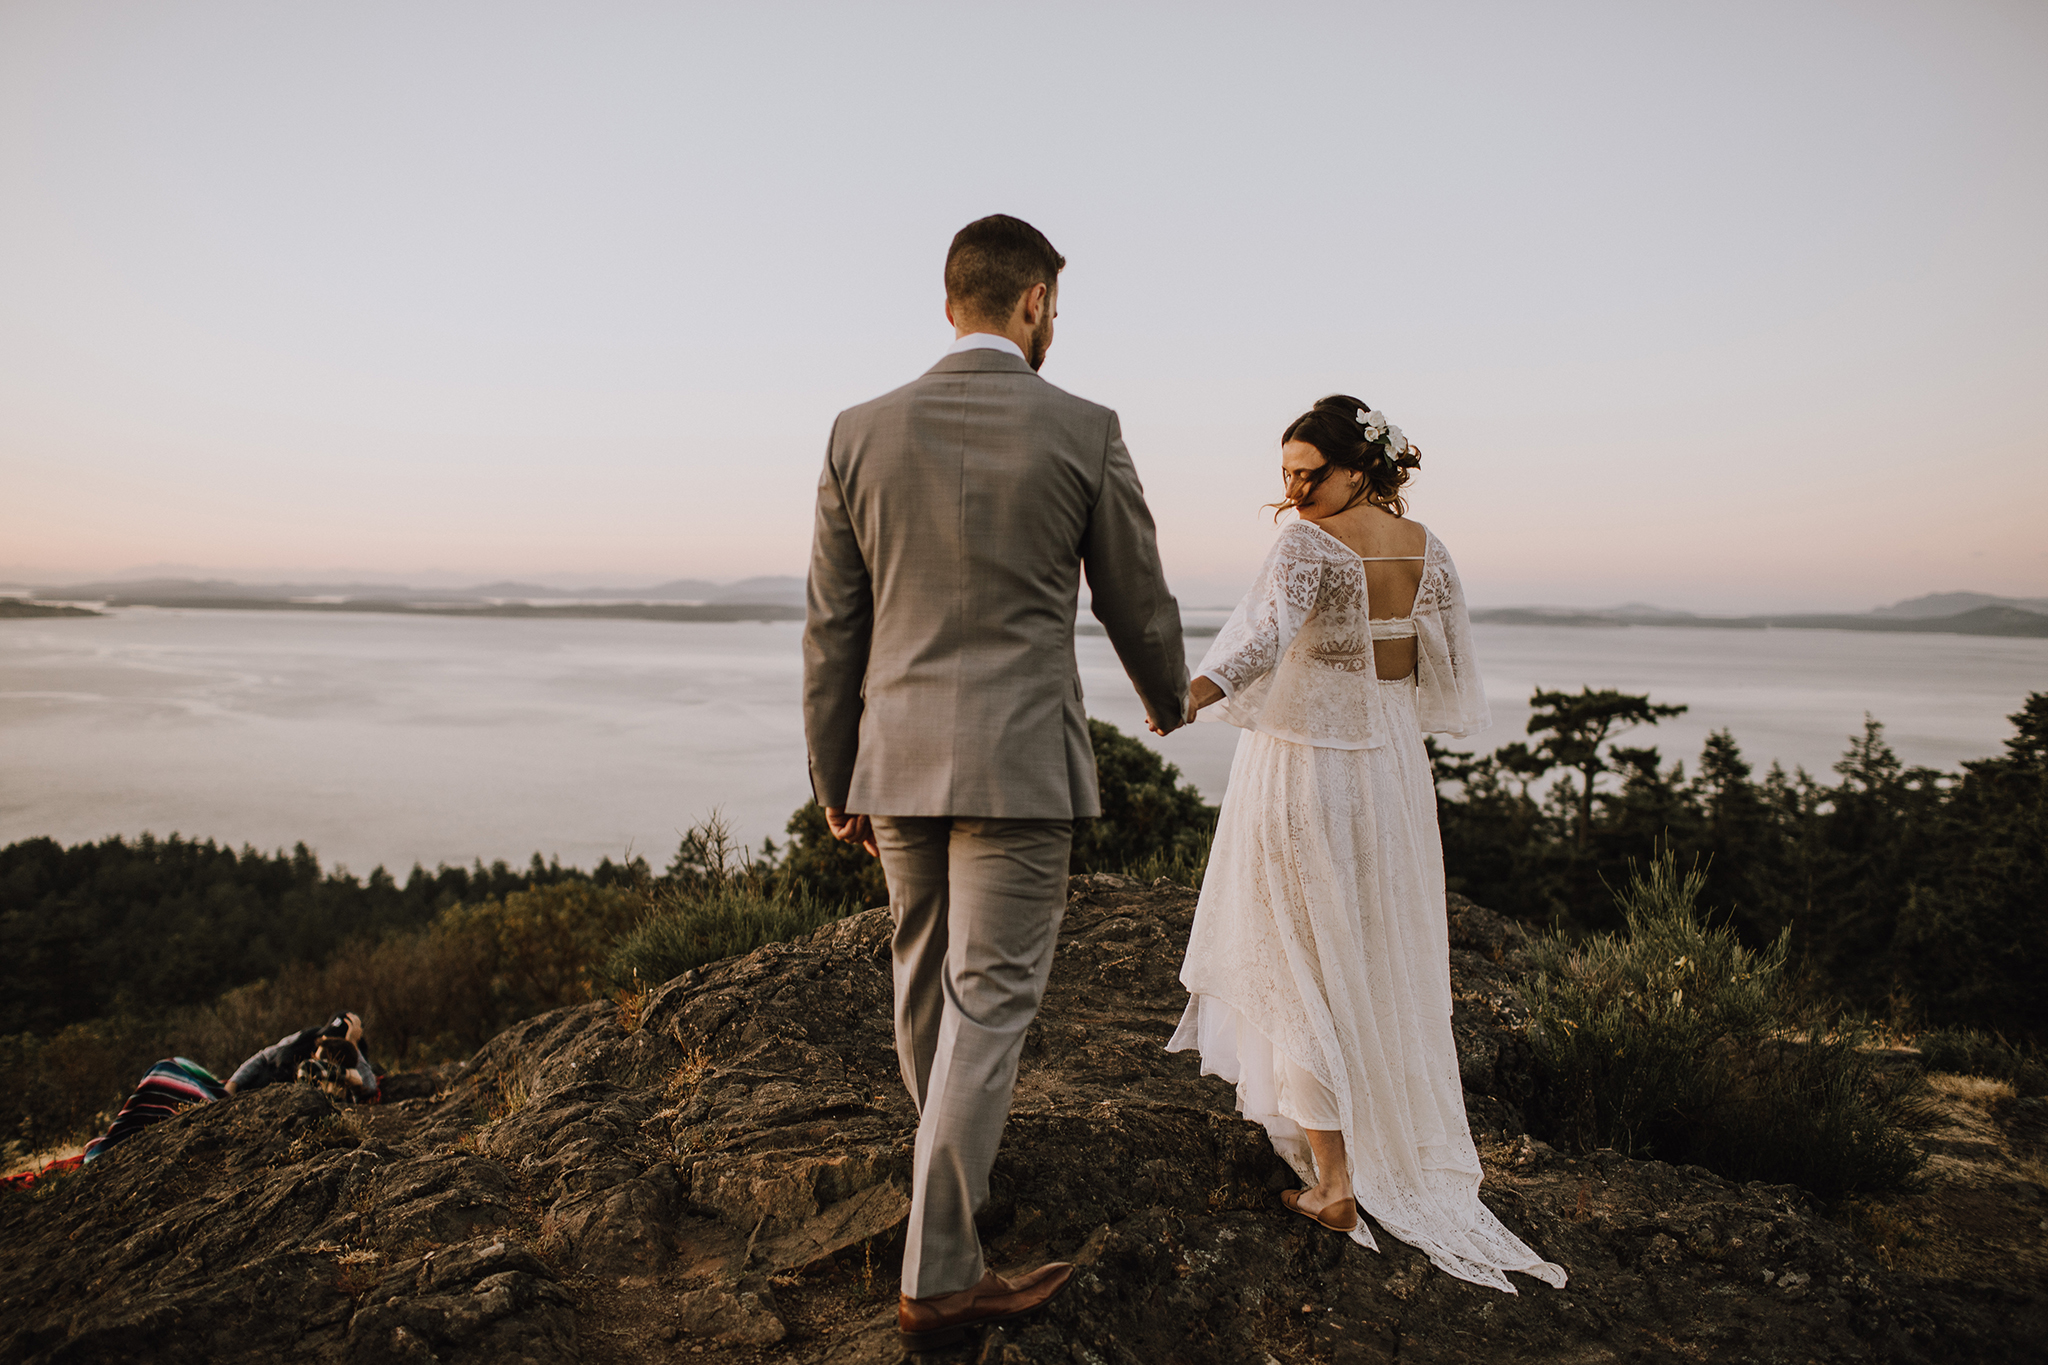 Maternity photography session ontop of Mount Douglas in Victoria with perfect sunset and beautiful white gowns from Reclamation. Myrtle and Moss Photography, Victoria Newborn and Maternity Photographer